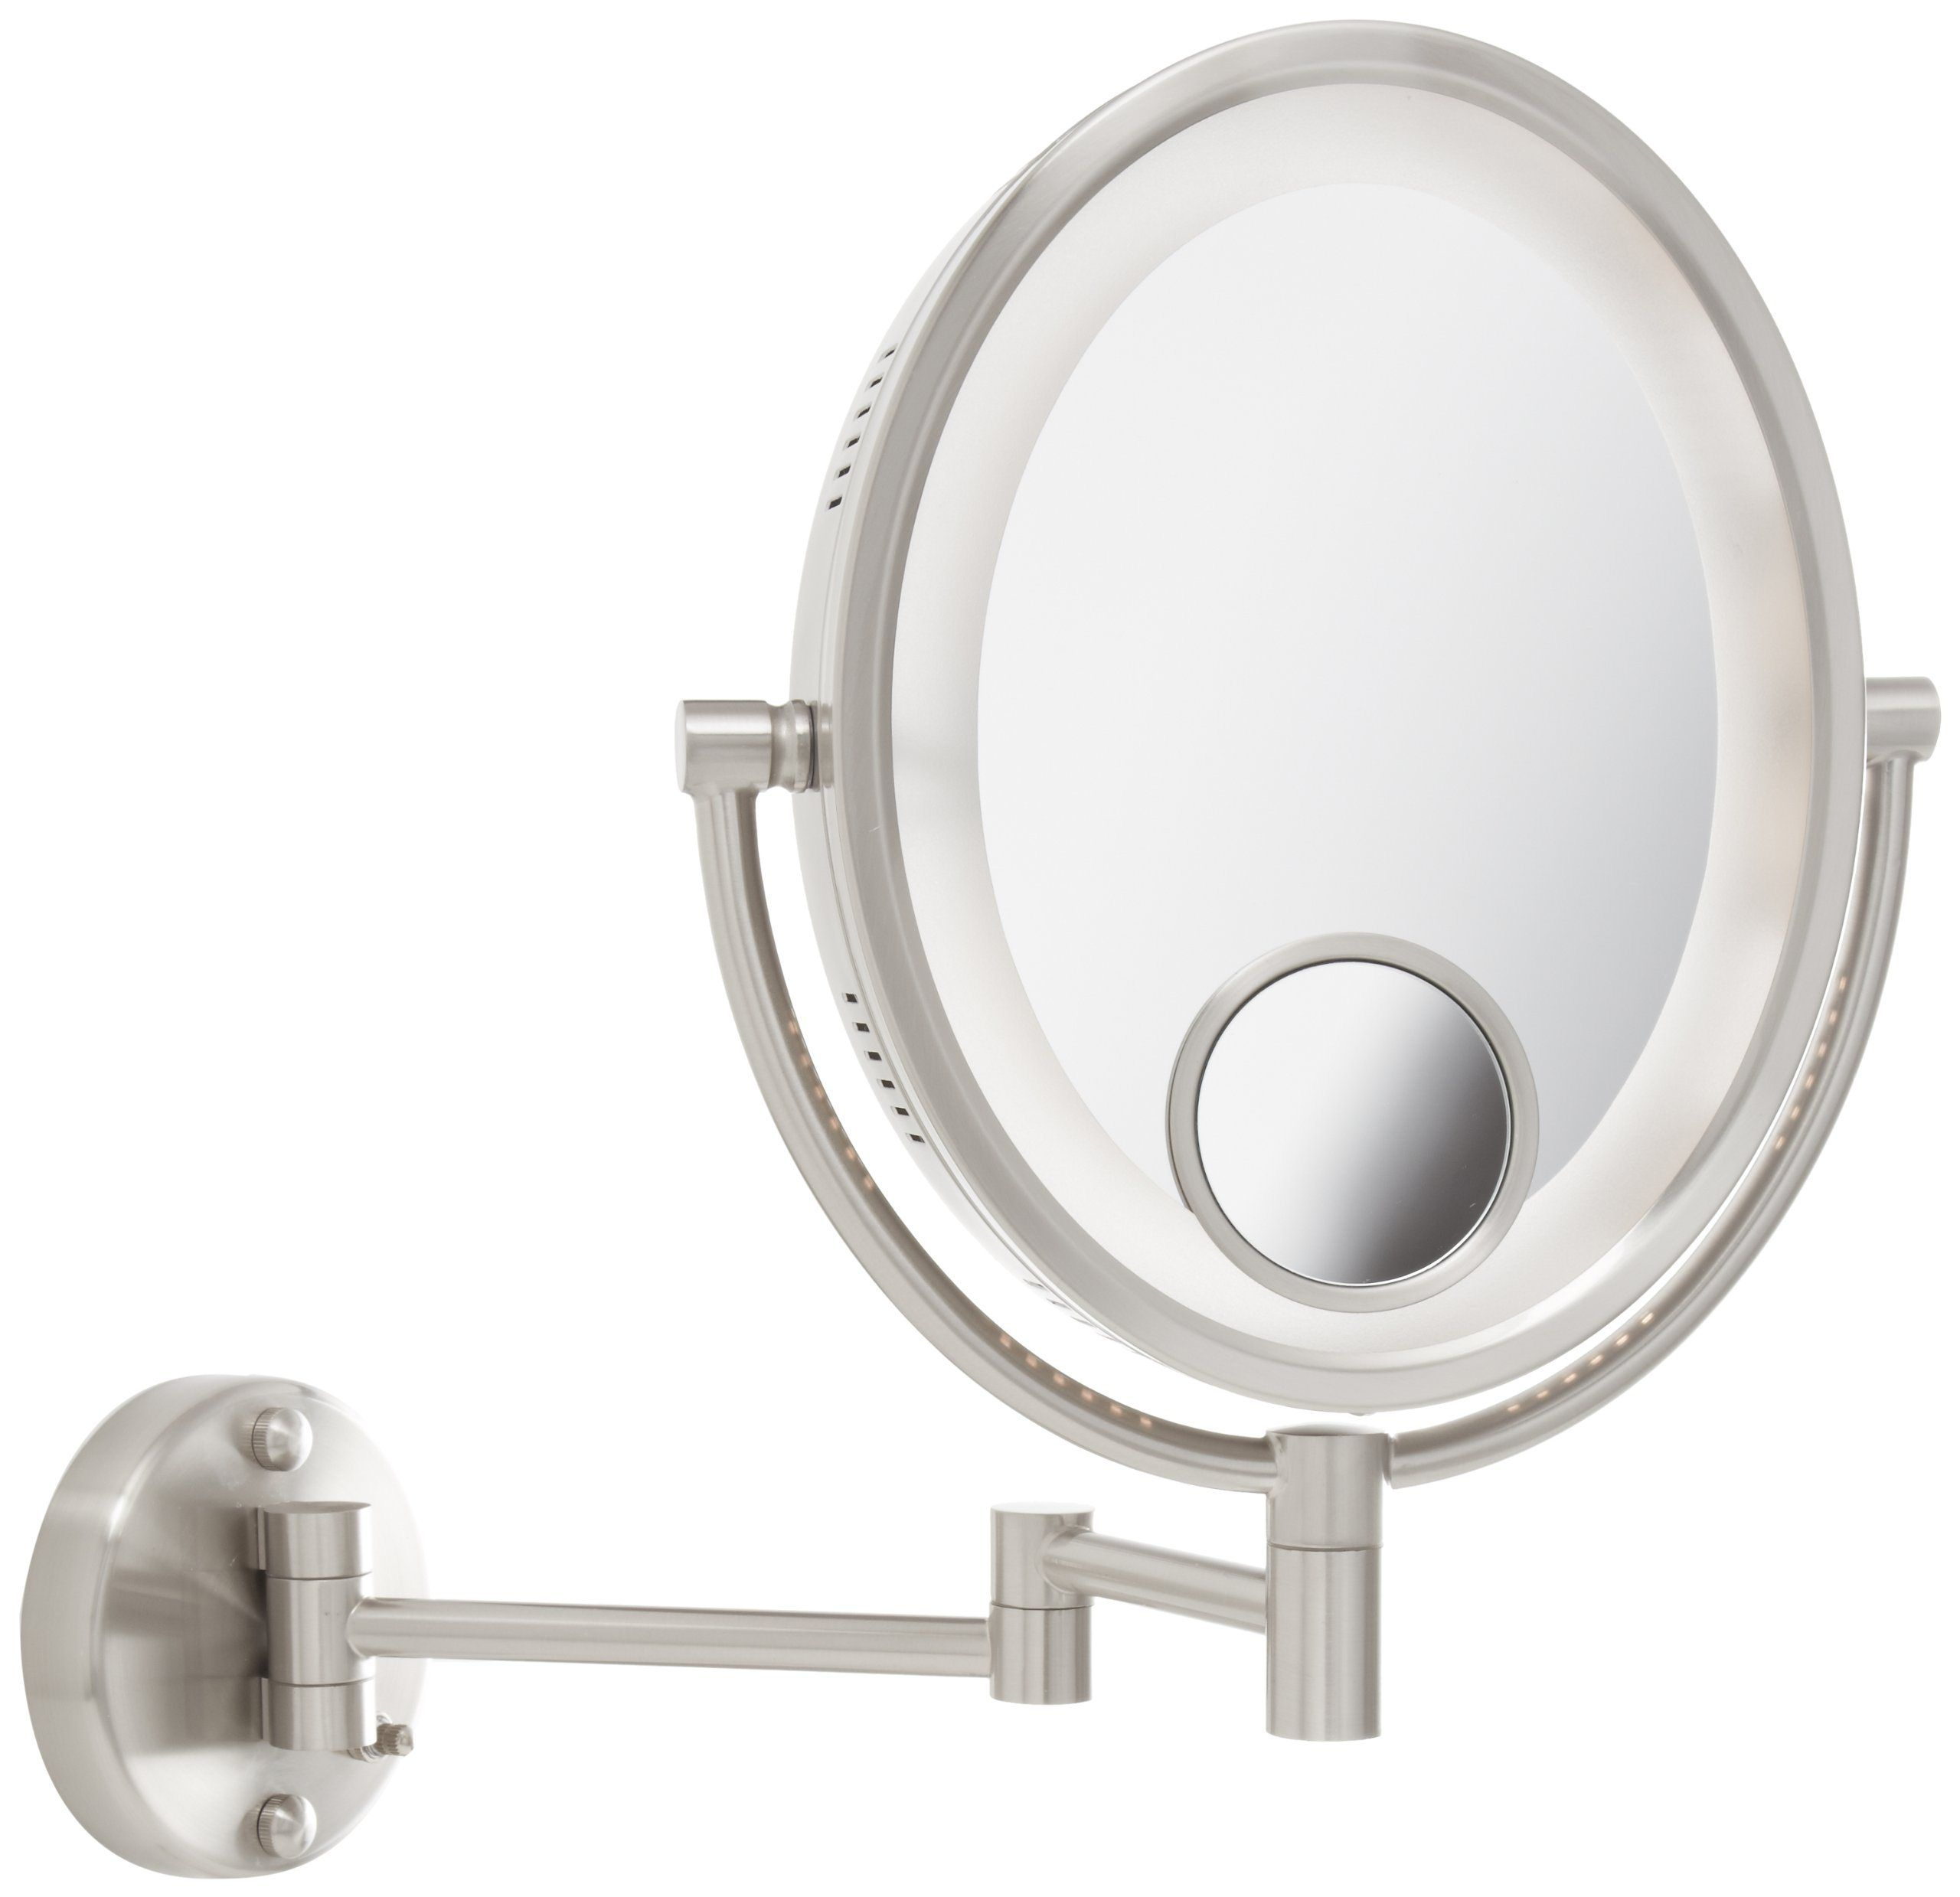 Vanity Makeup Mirror With Lights Makeup Mirror With Lights Wall